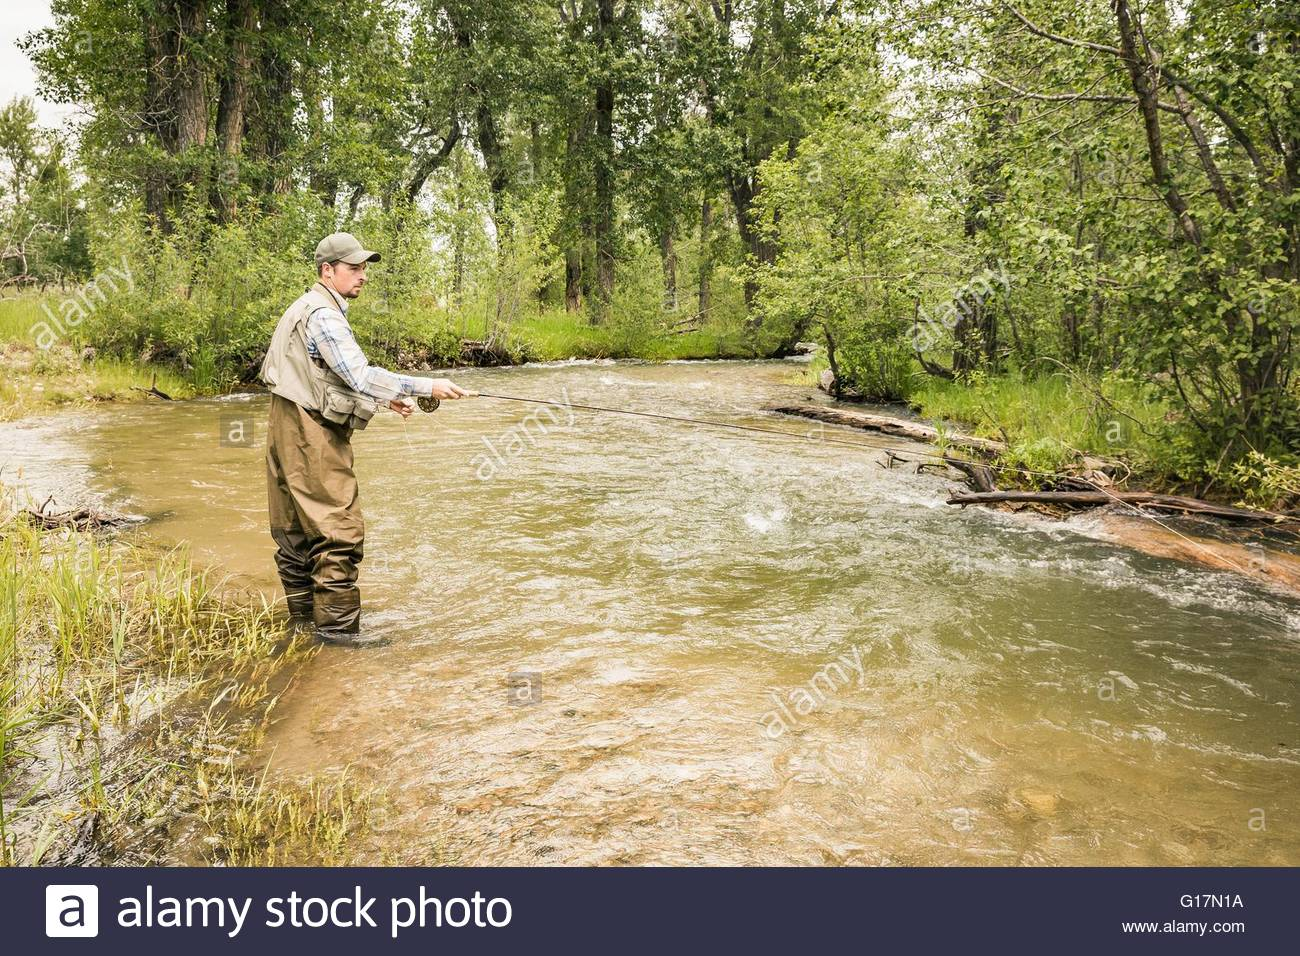 Man wearing waders ankle deep in water fishing in river - Stock Image